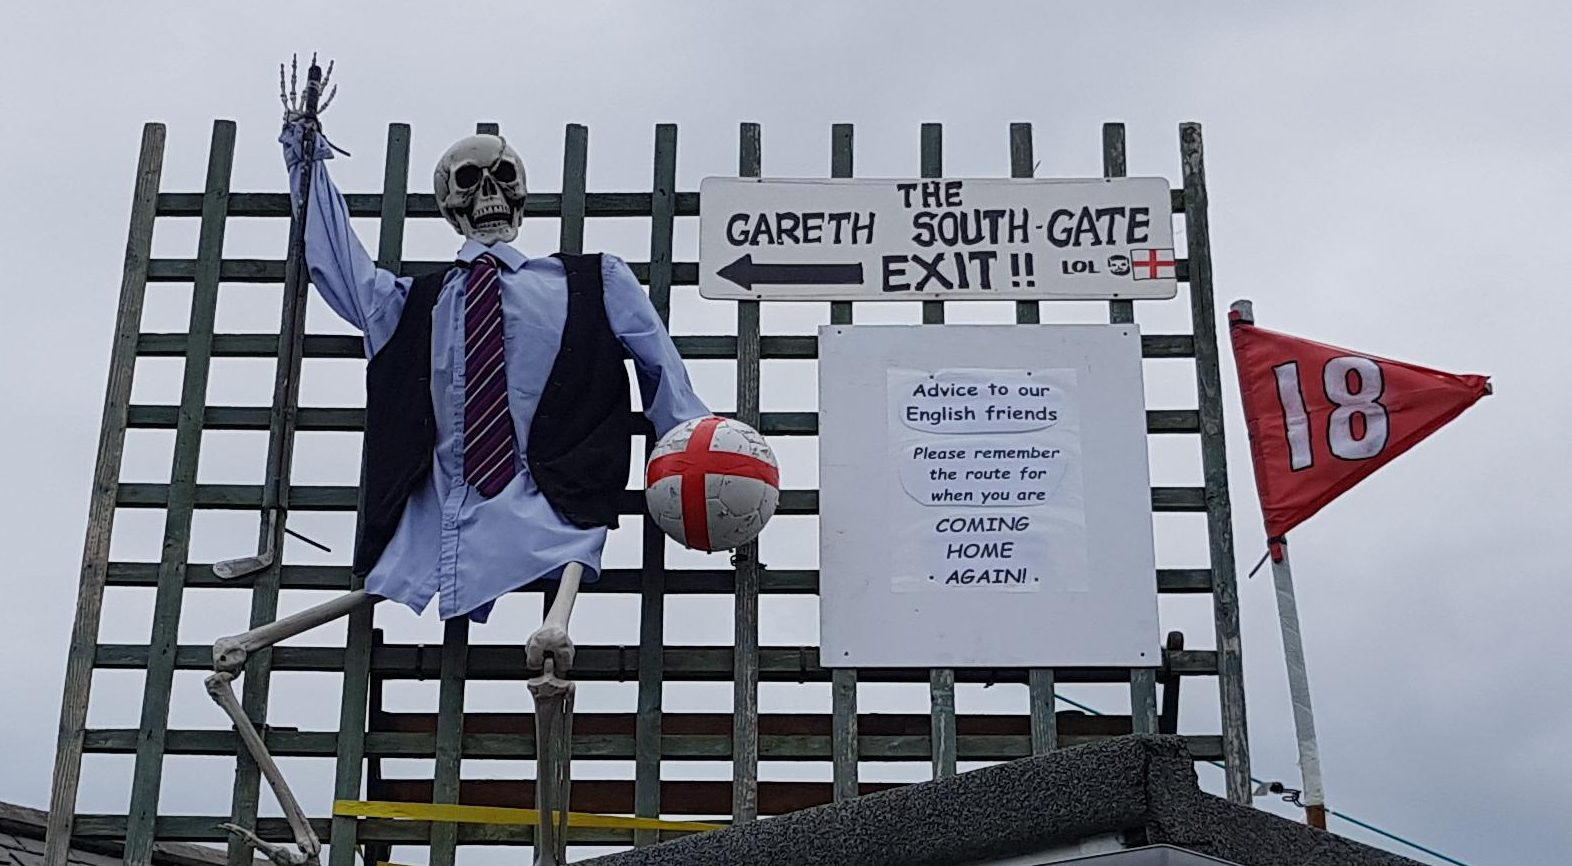 Tartan Army fan Kenneth Whyte said he got fed up with the World Cup hype over the Three Lions and responded with an effigy he claims was just a joke